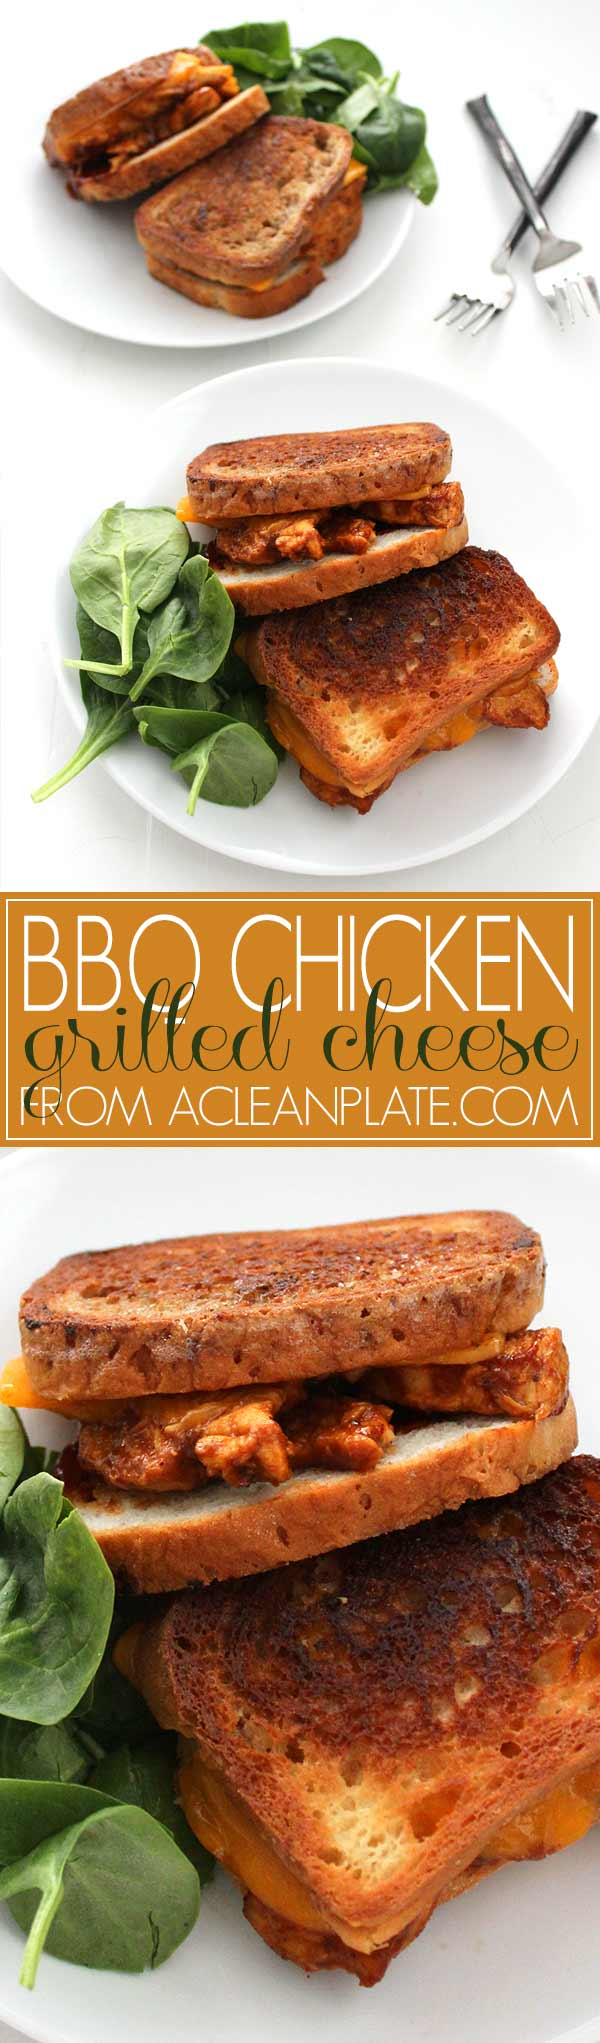 BBQ Chicken Grilled Cheese Sandwich recipe from acleanplate.com